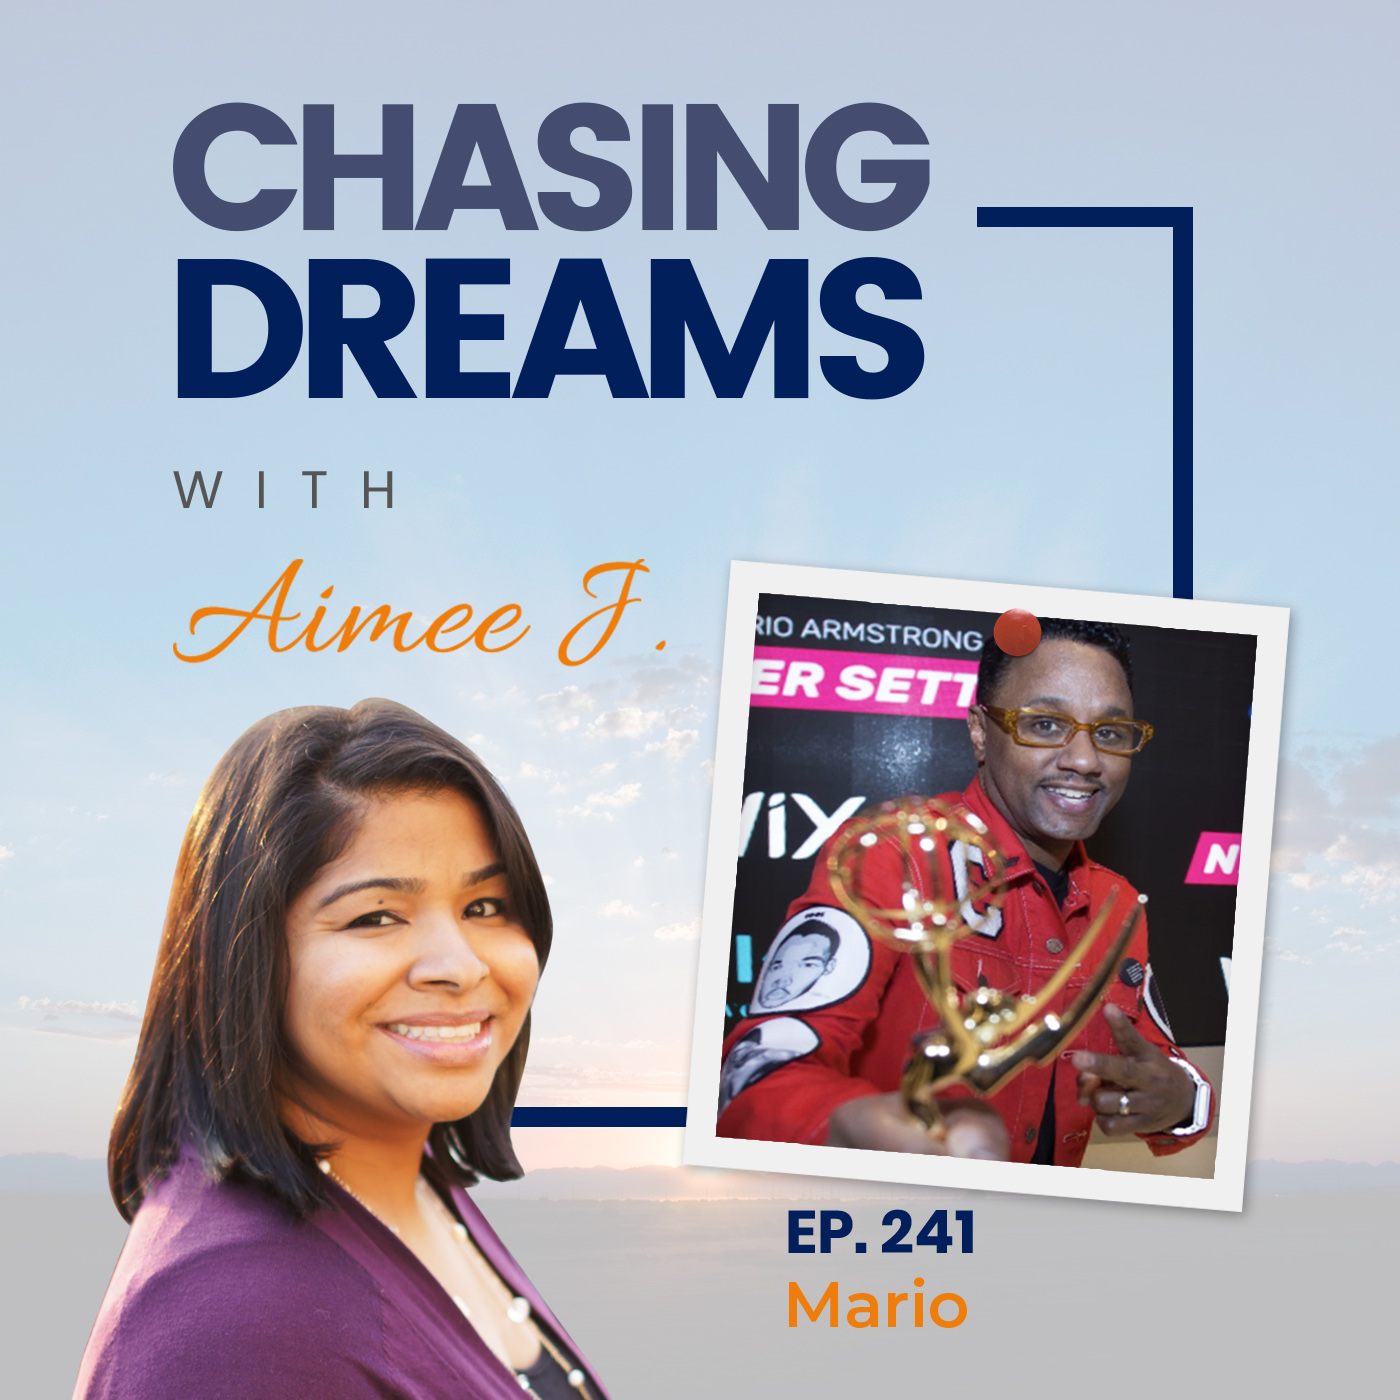 Mario Armstrong on Chasing Dreams Podcast with Aimee J.